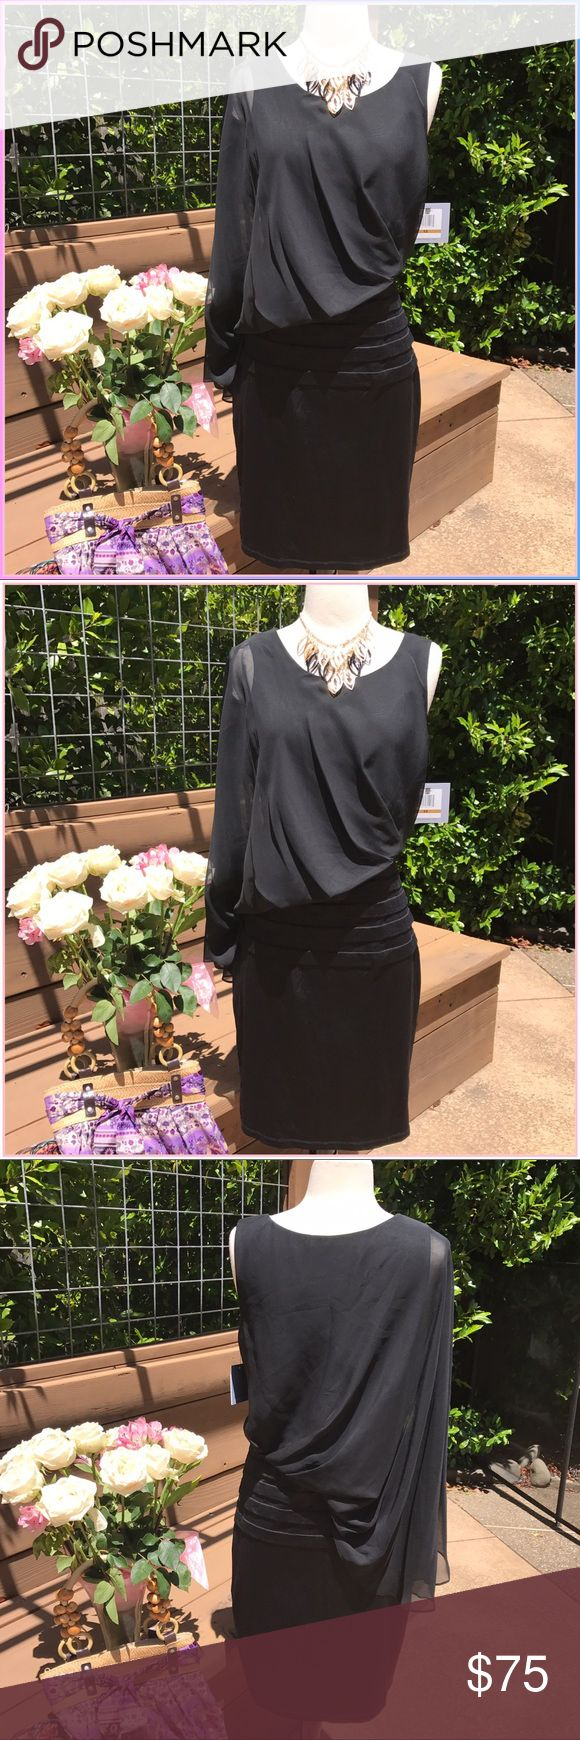 Andrew Marc Brand new sleek LBD, this NY runway piece is divine for special events. It's bell of the bell, Cinderella and the glass slipper!. Smooth, sultry & simply marvelous!. Nylon & spandex! Offer in don't pass it up- Andrew Marc Dresses